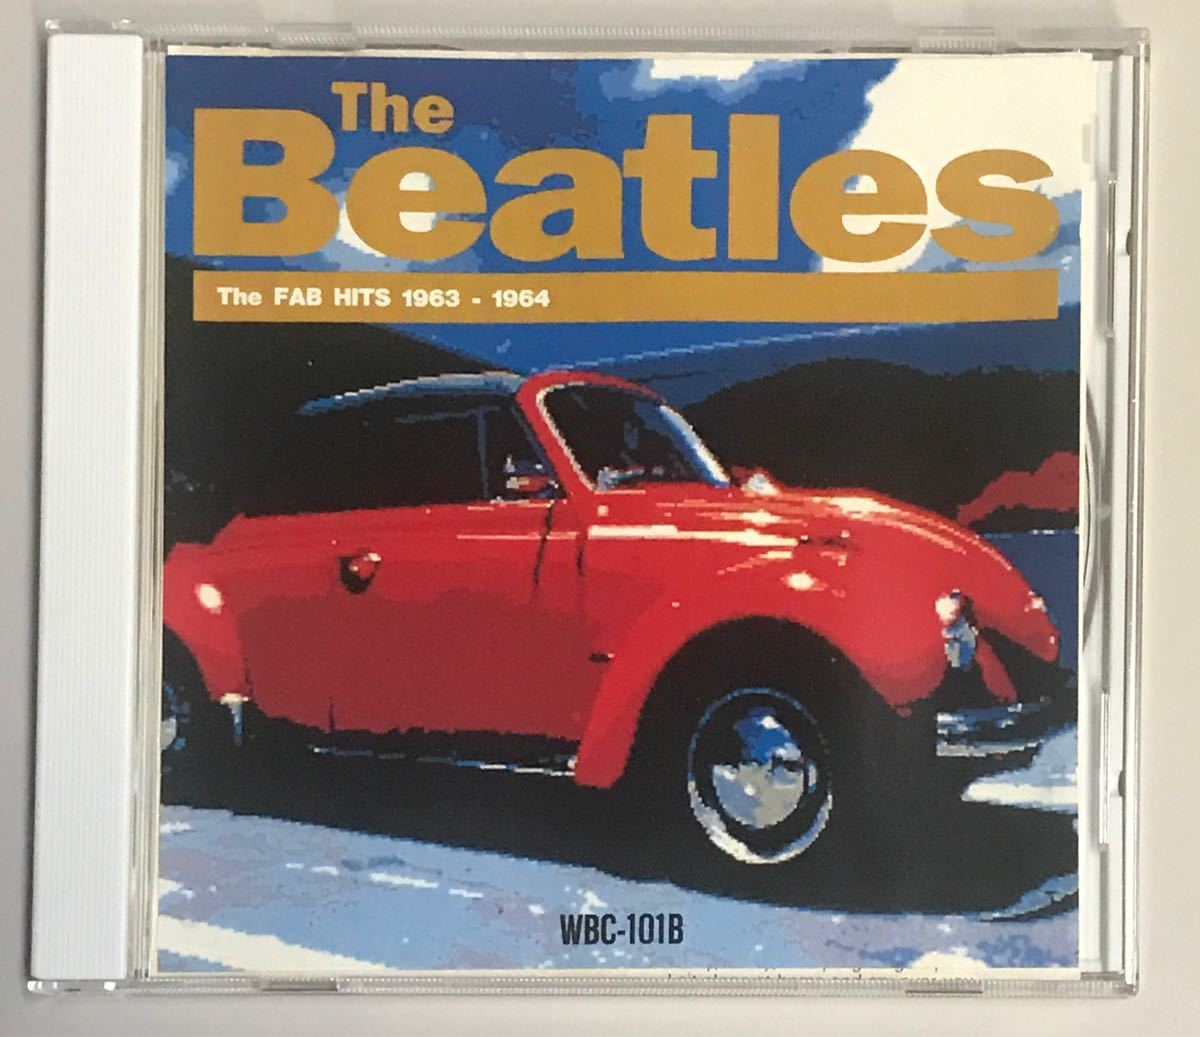 The beatles / The Fab Hits 1963-1964